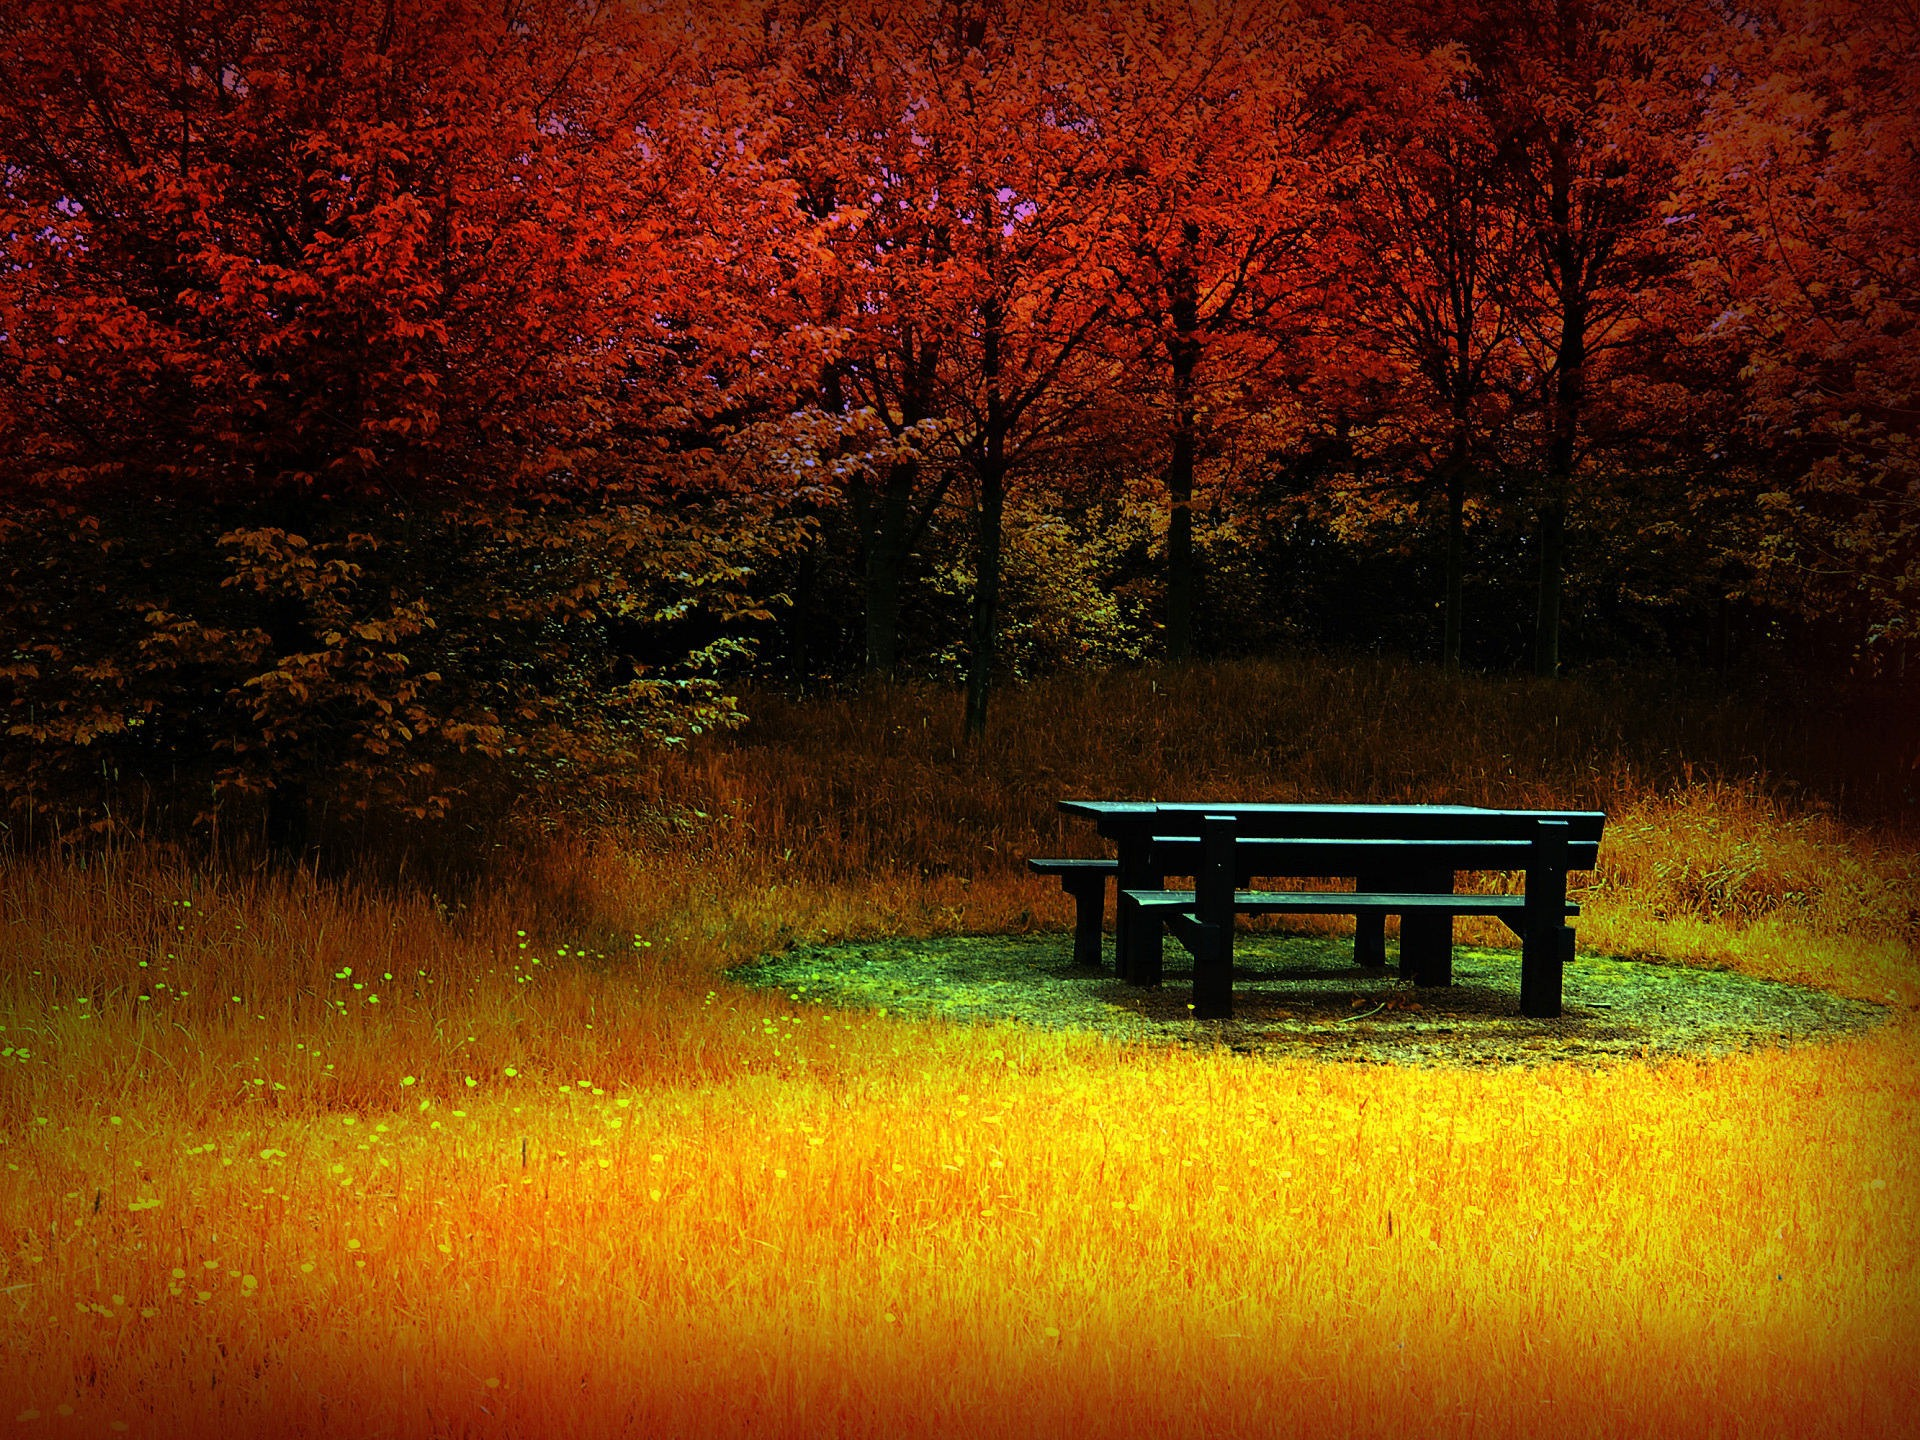 Tranquility of Autumn